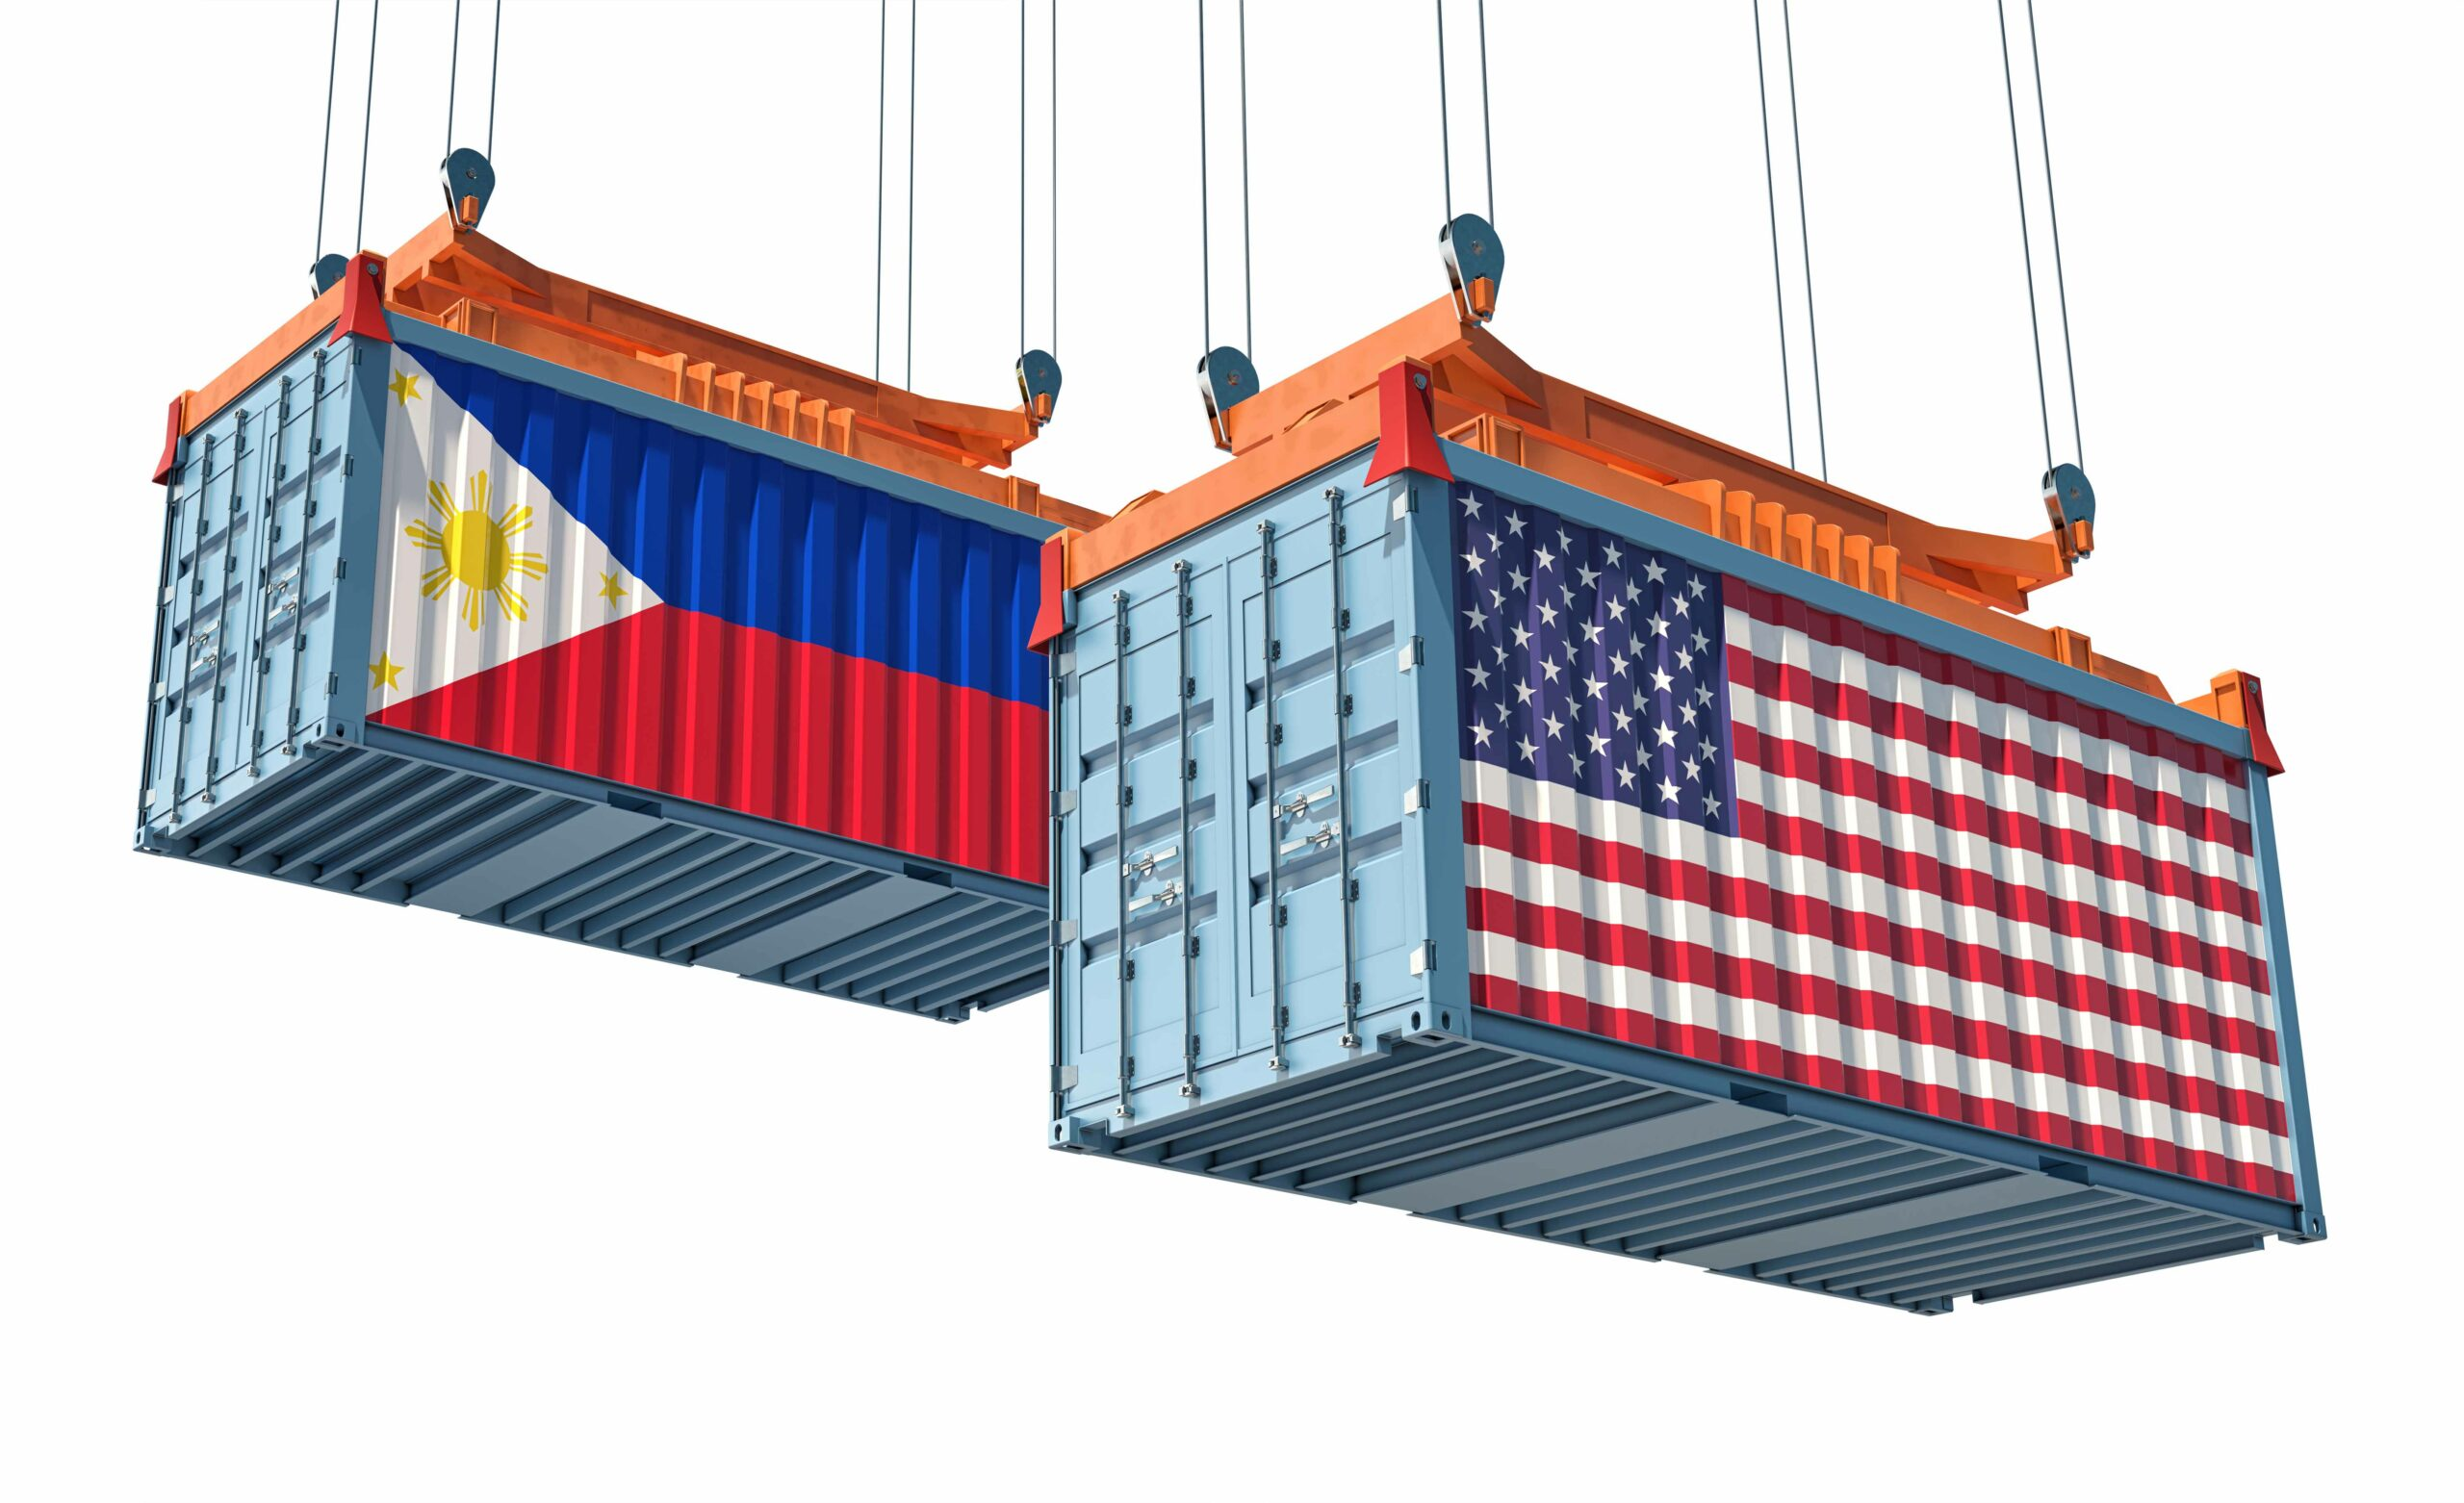 The Philippines Send First Ship in 45-Years to U.S. to Fill Shipping Gap Apollo Cargo Alliance